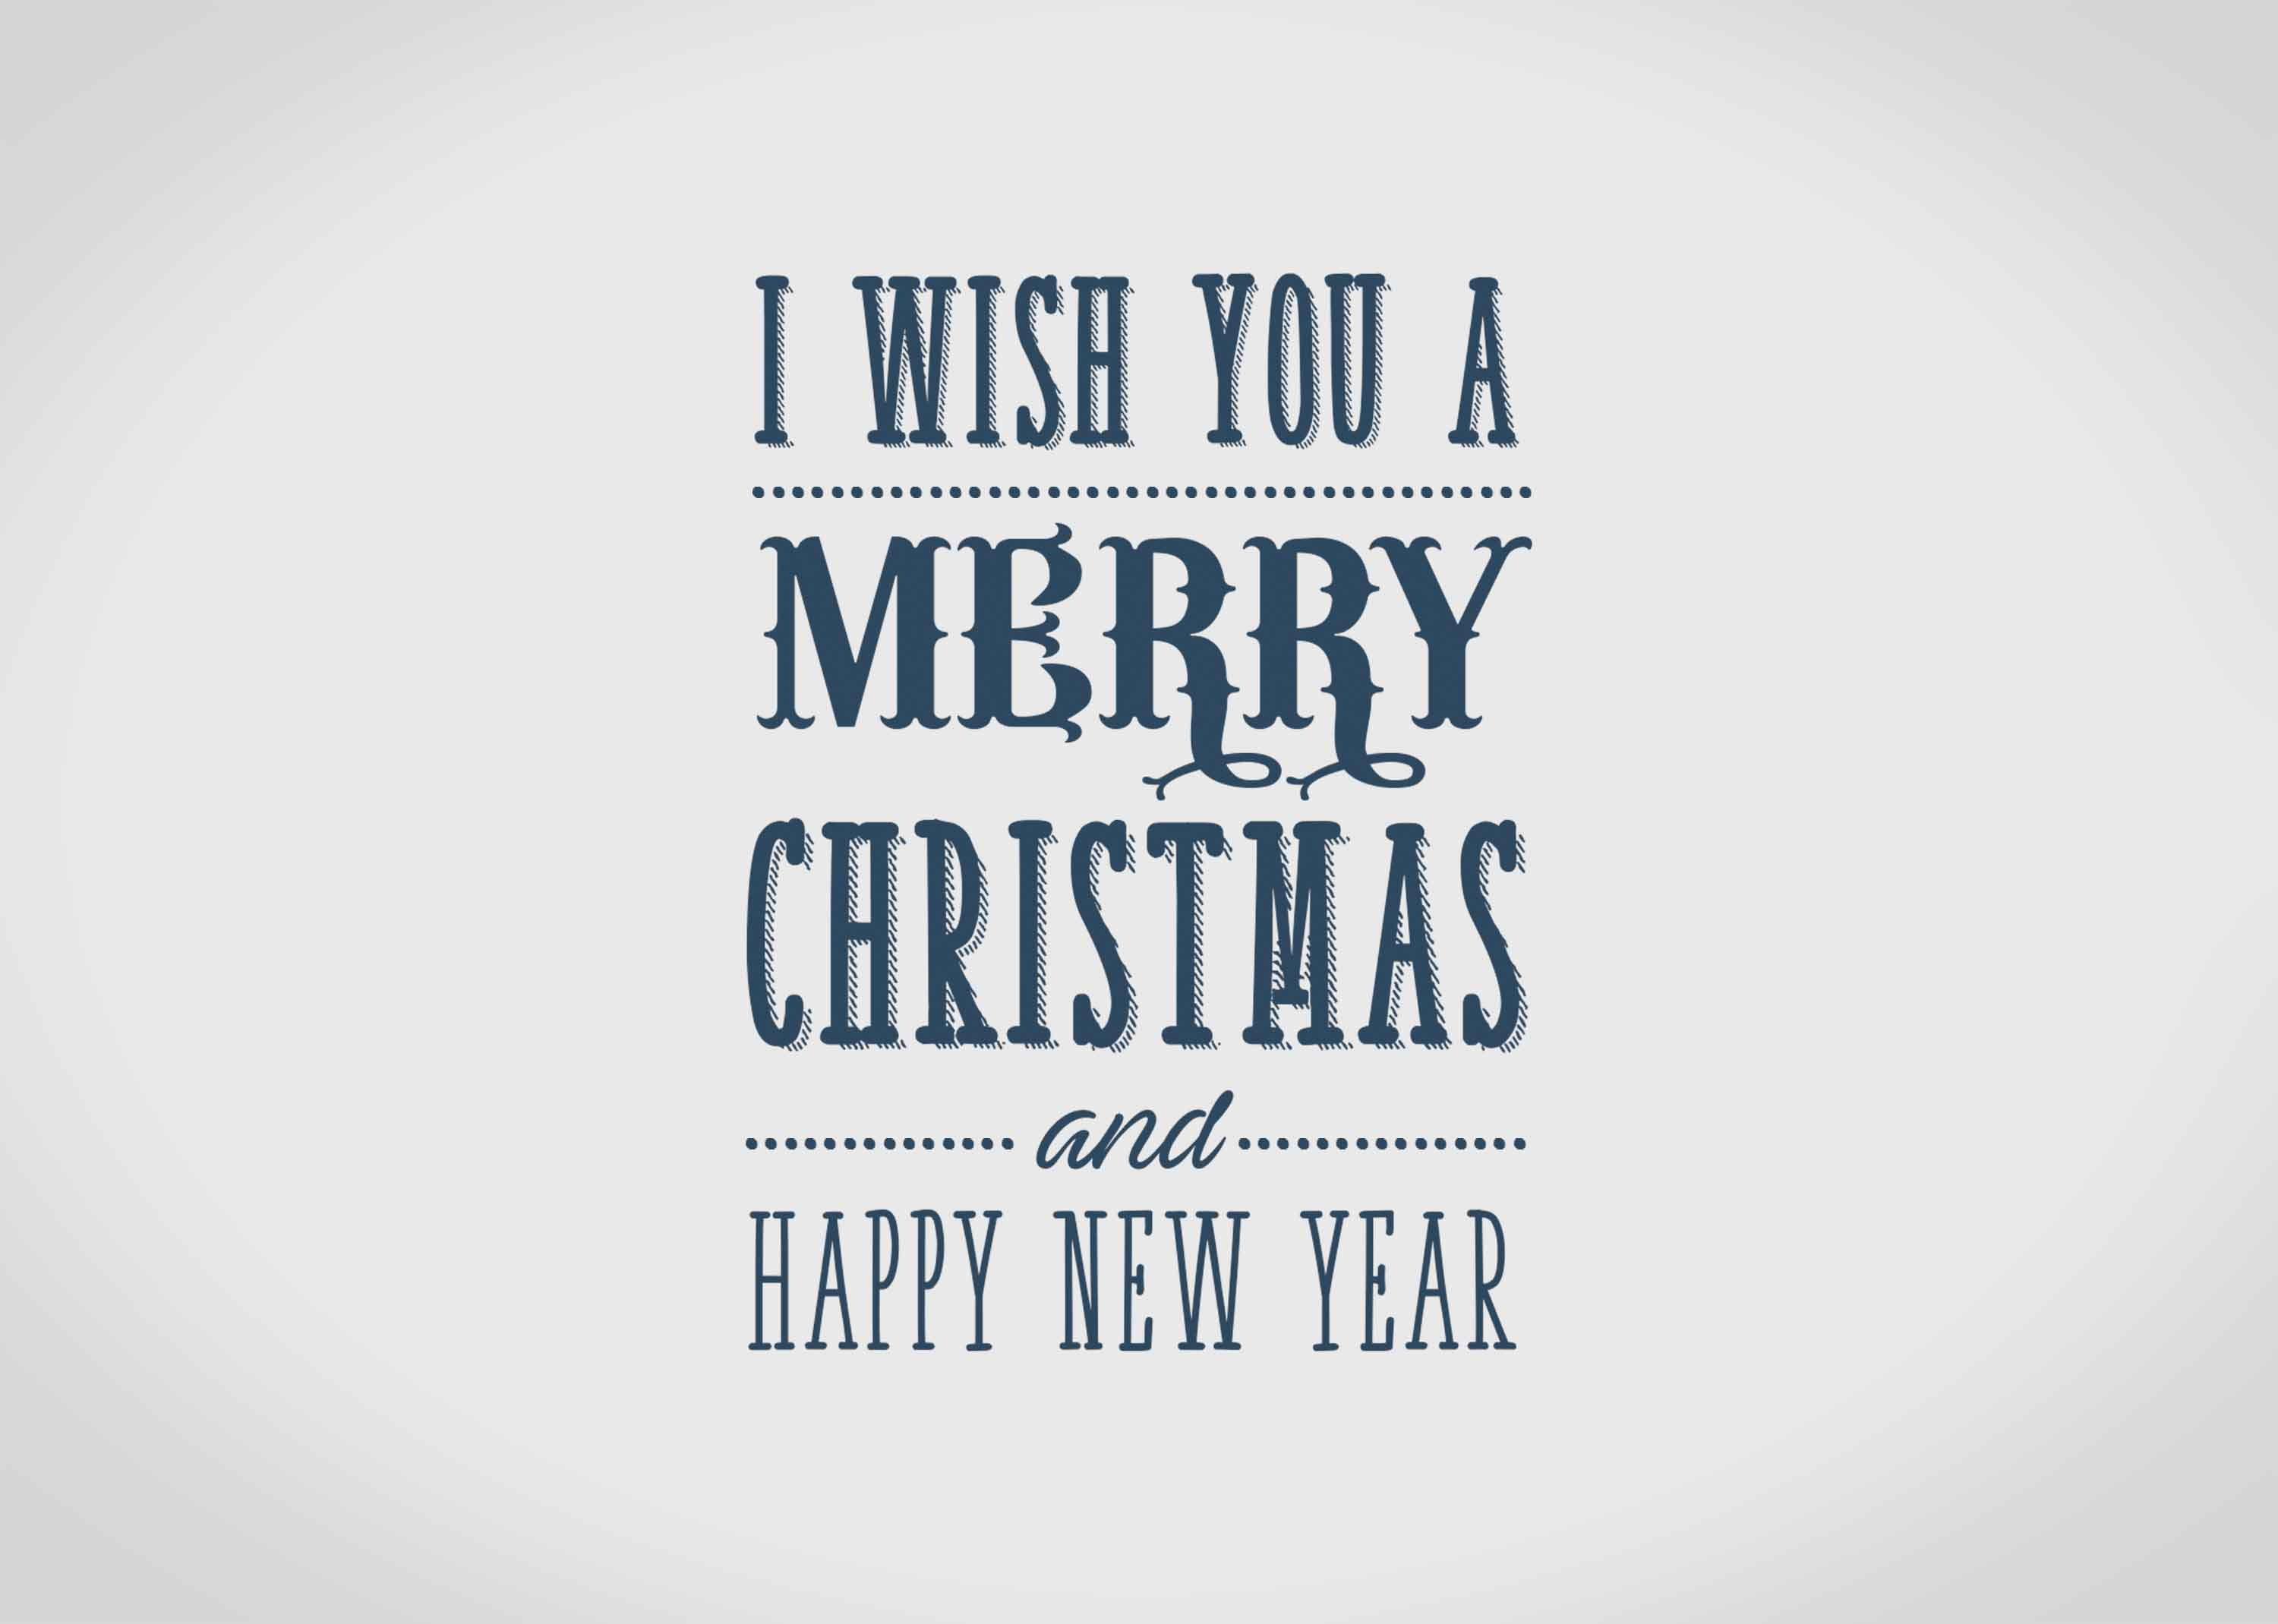 I wish you merry christmas and happy new year quote Graphic by MG ...